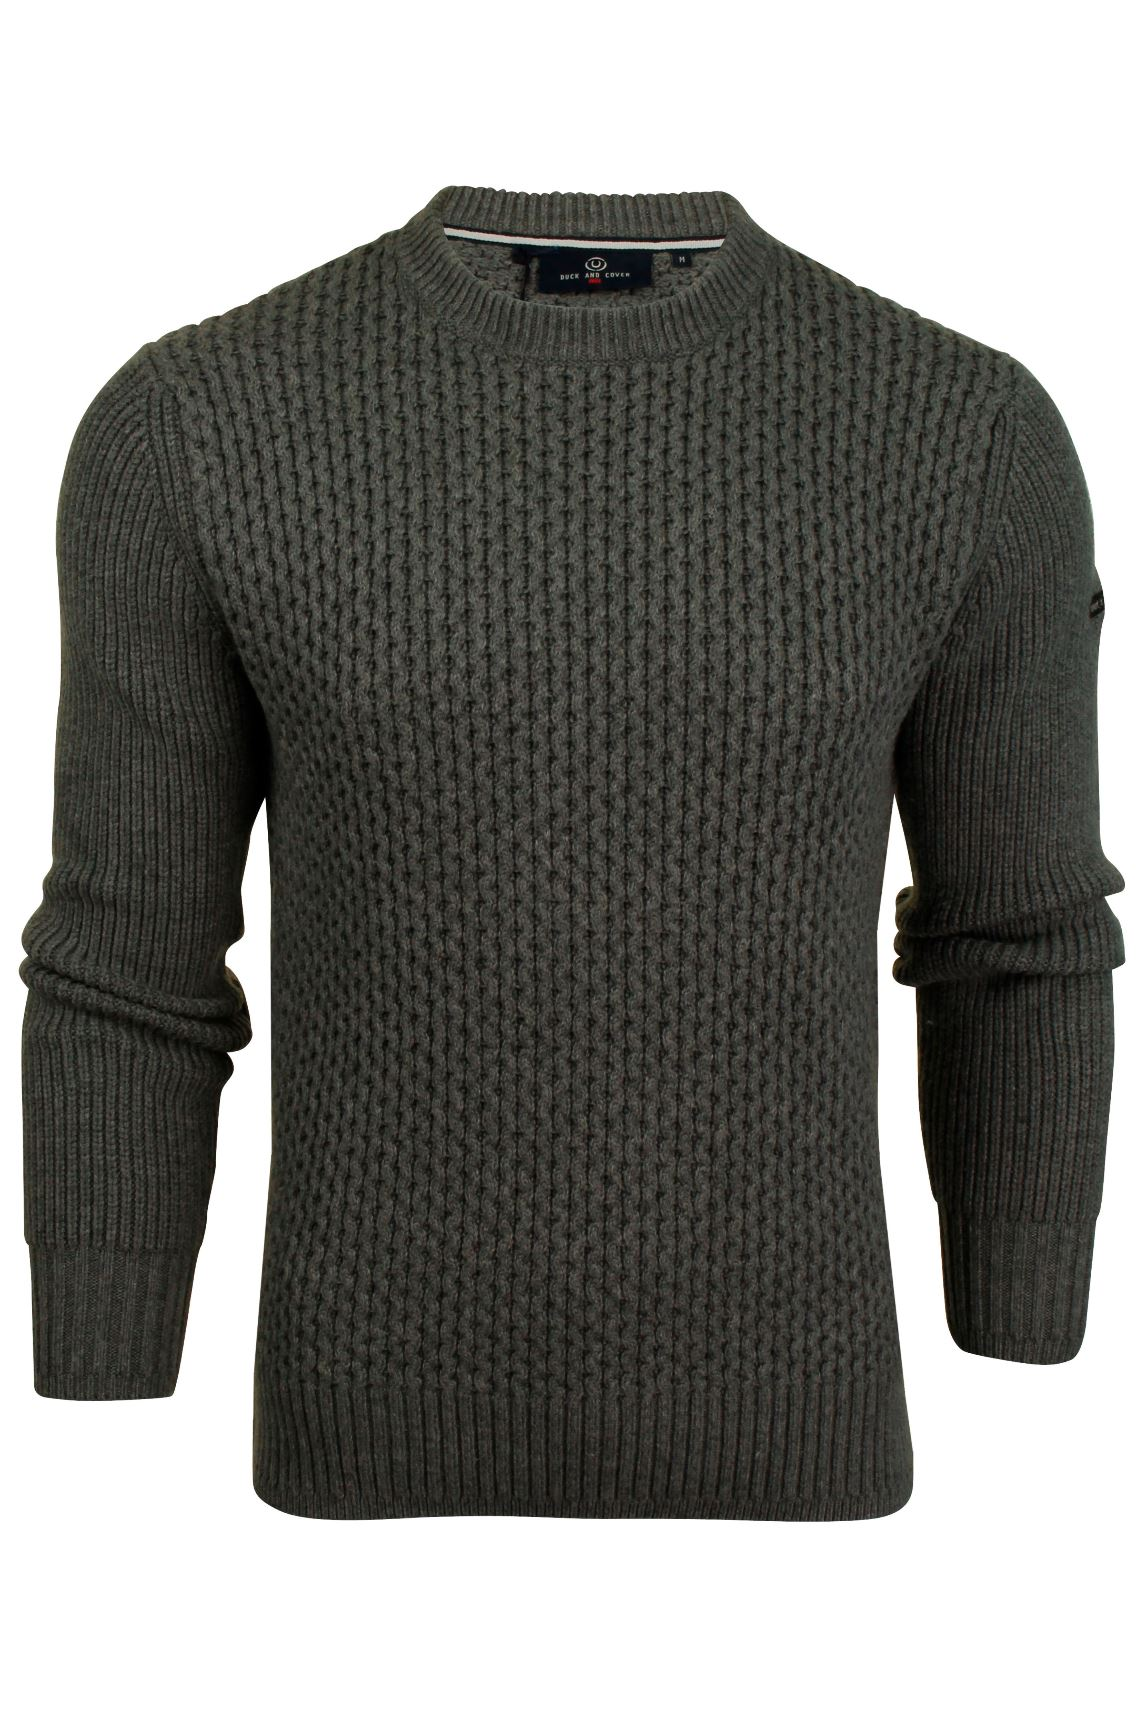 Mens Honeycombe Stitch Jumper by Duck and Cover 'Beam'-2